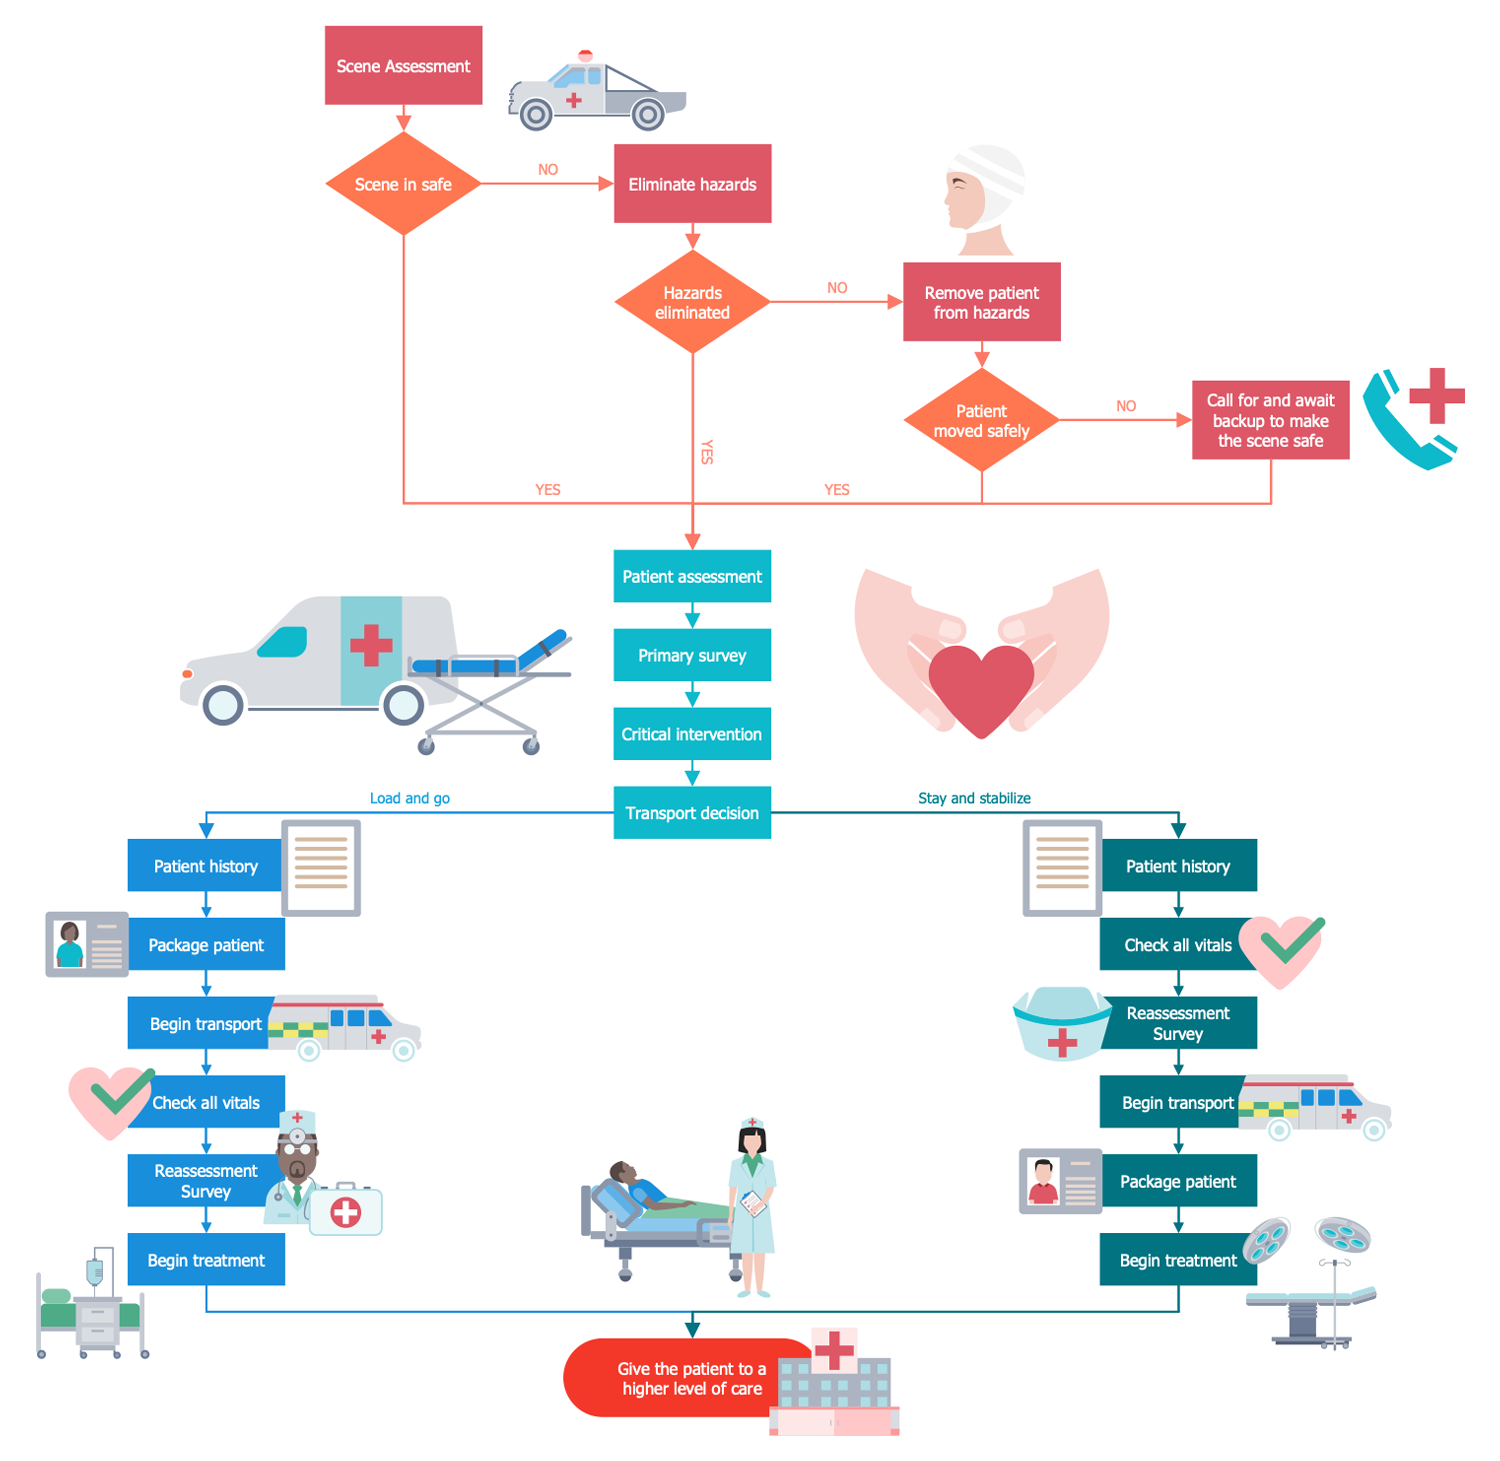 Pin on Business Processes — Healthcare Management Workflow